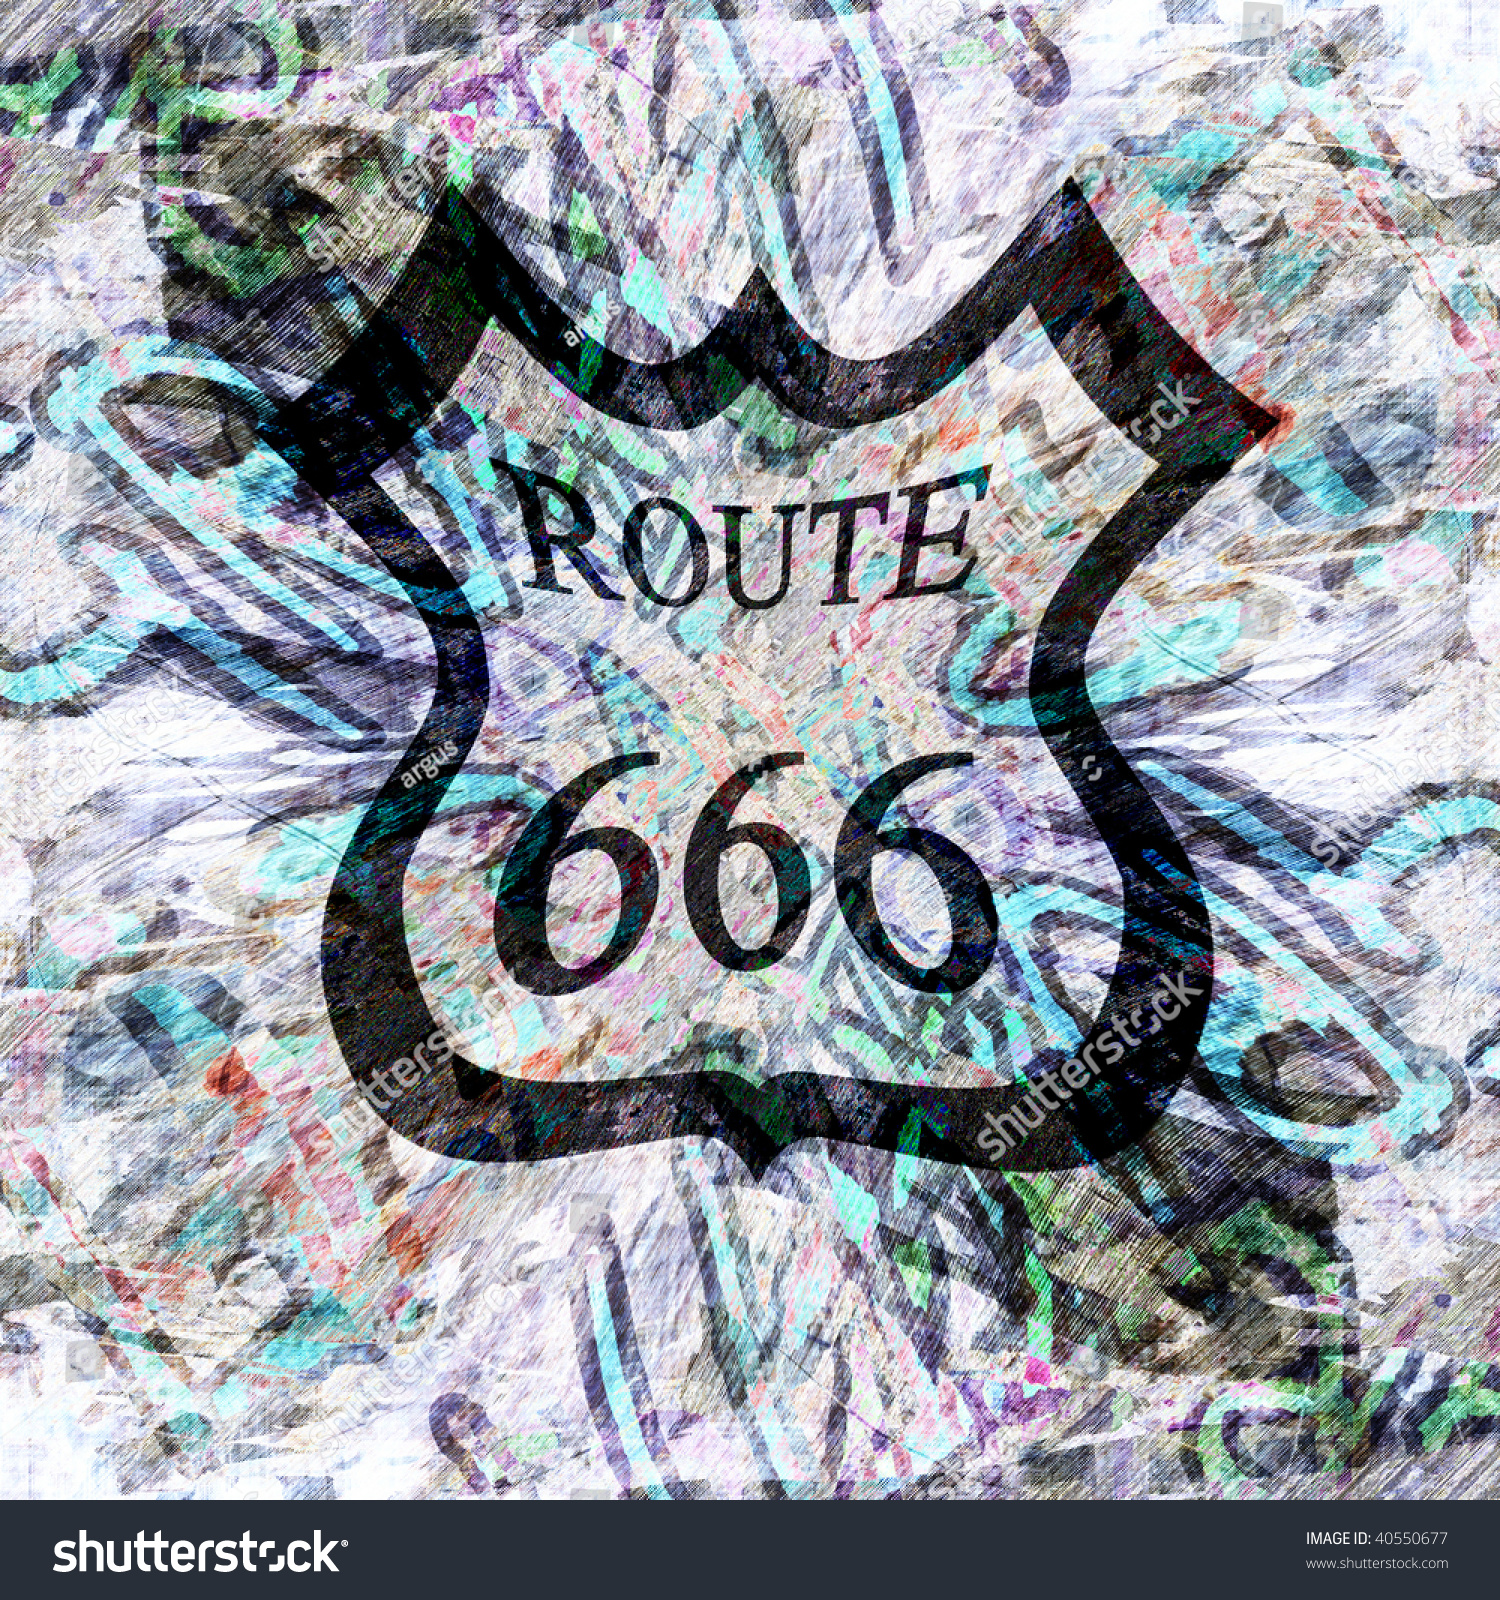 Grunge wall with graffiti and route 666 sign on it